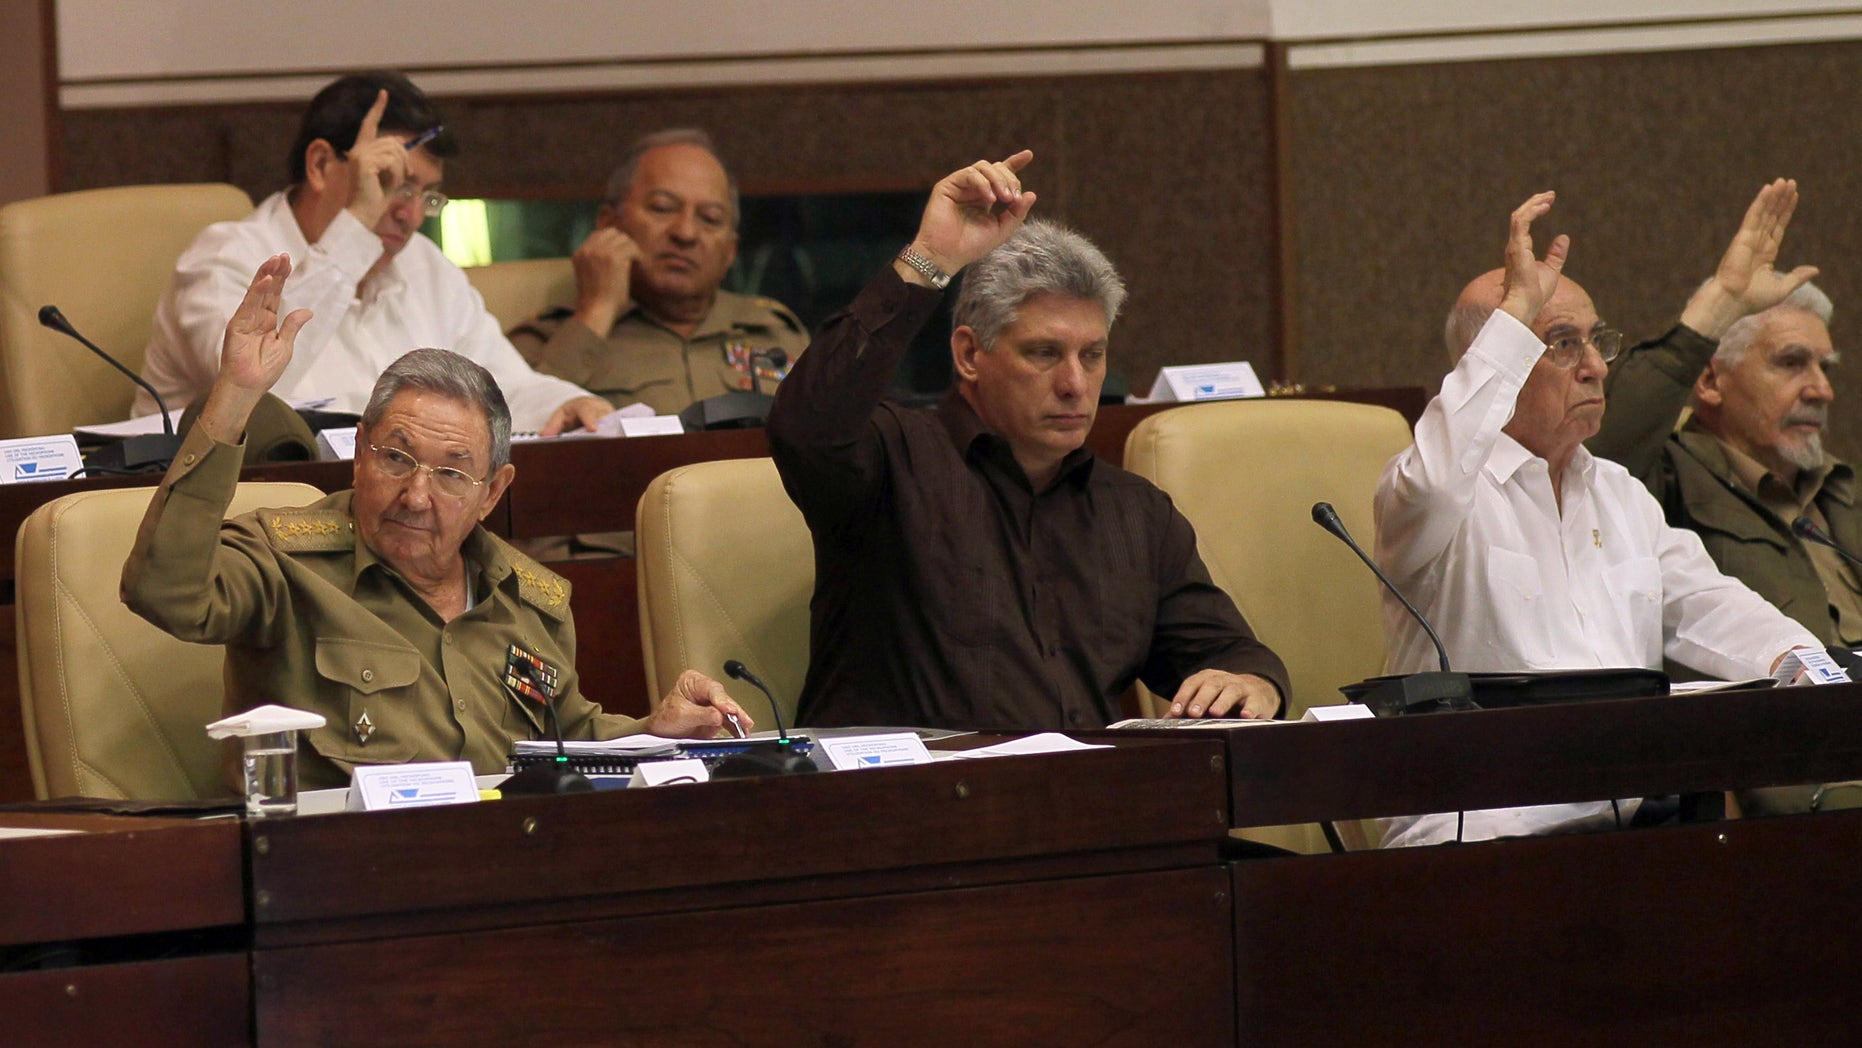 Cuba's President Raul Castro, Cuba's Vice-President Miguel Diaz-Canel and  First Vice-President of the Council of State Jose Ramon Machado Ventura during an extraordinary session at the National Assembly in Havana, Cuba, Saturday, March. 29, 2014.